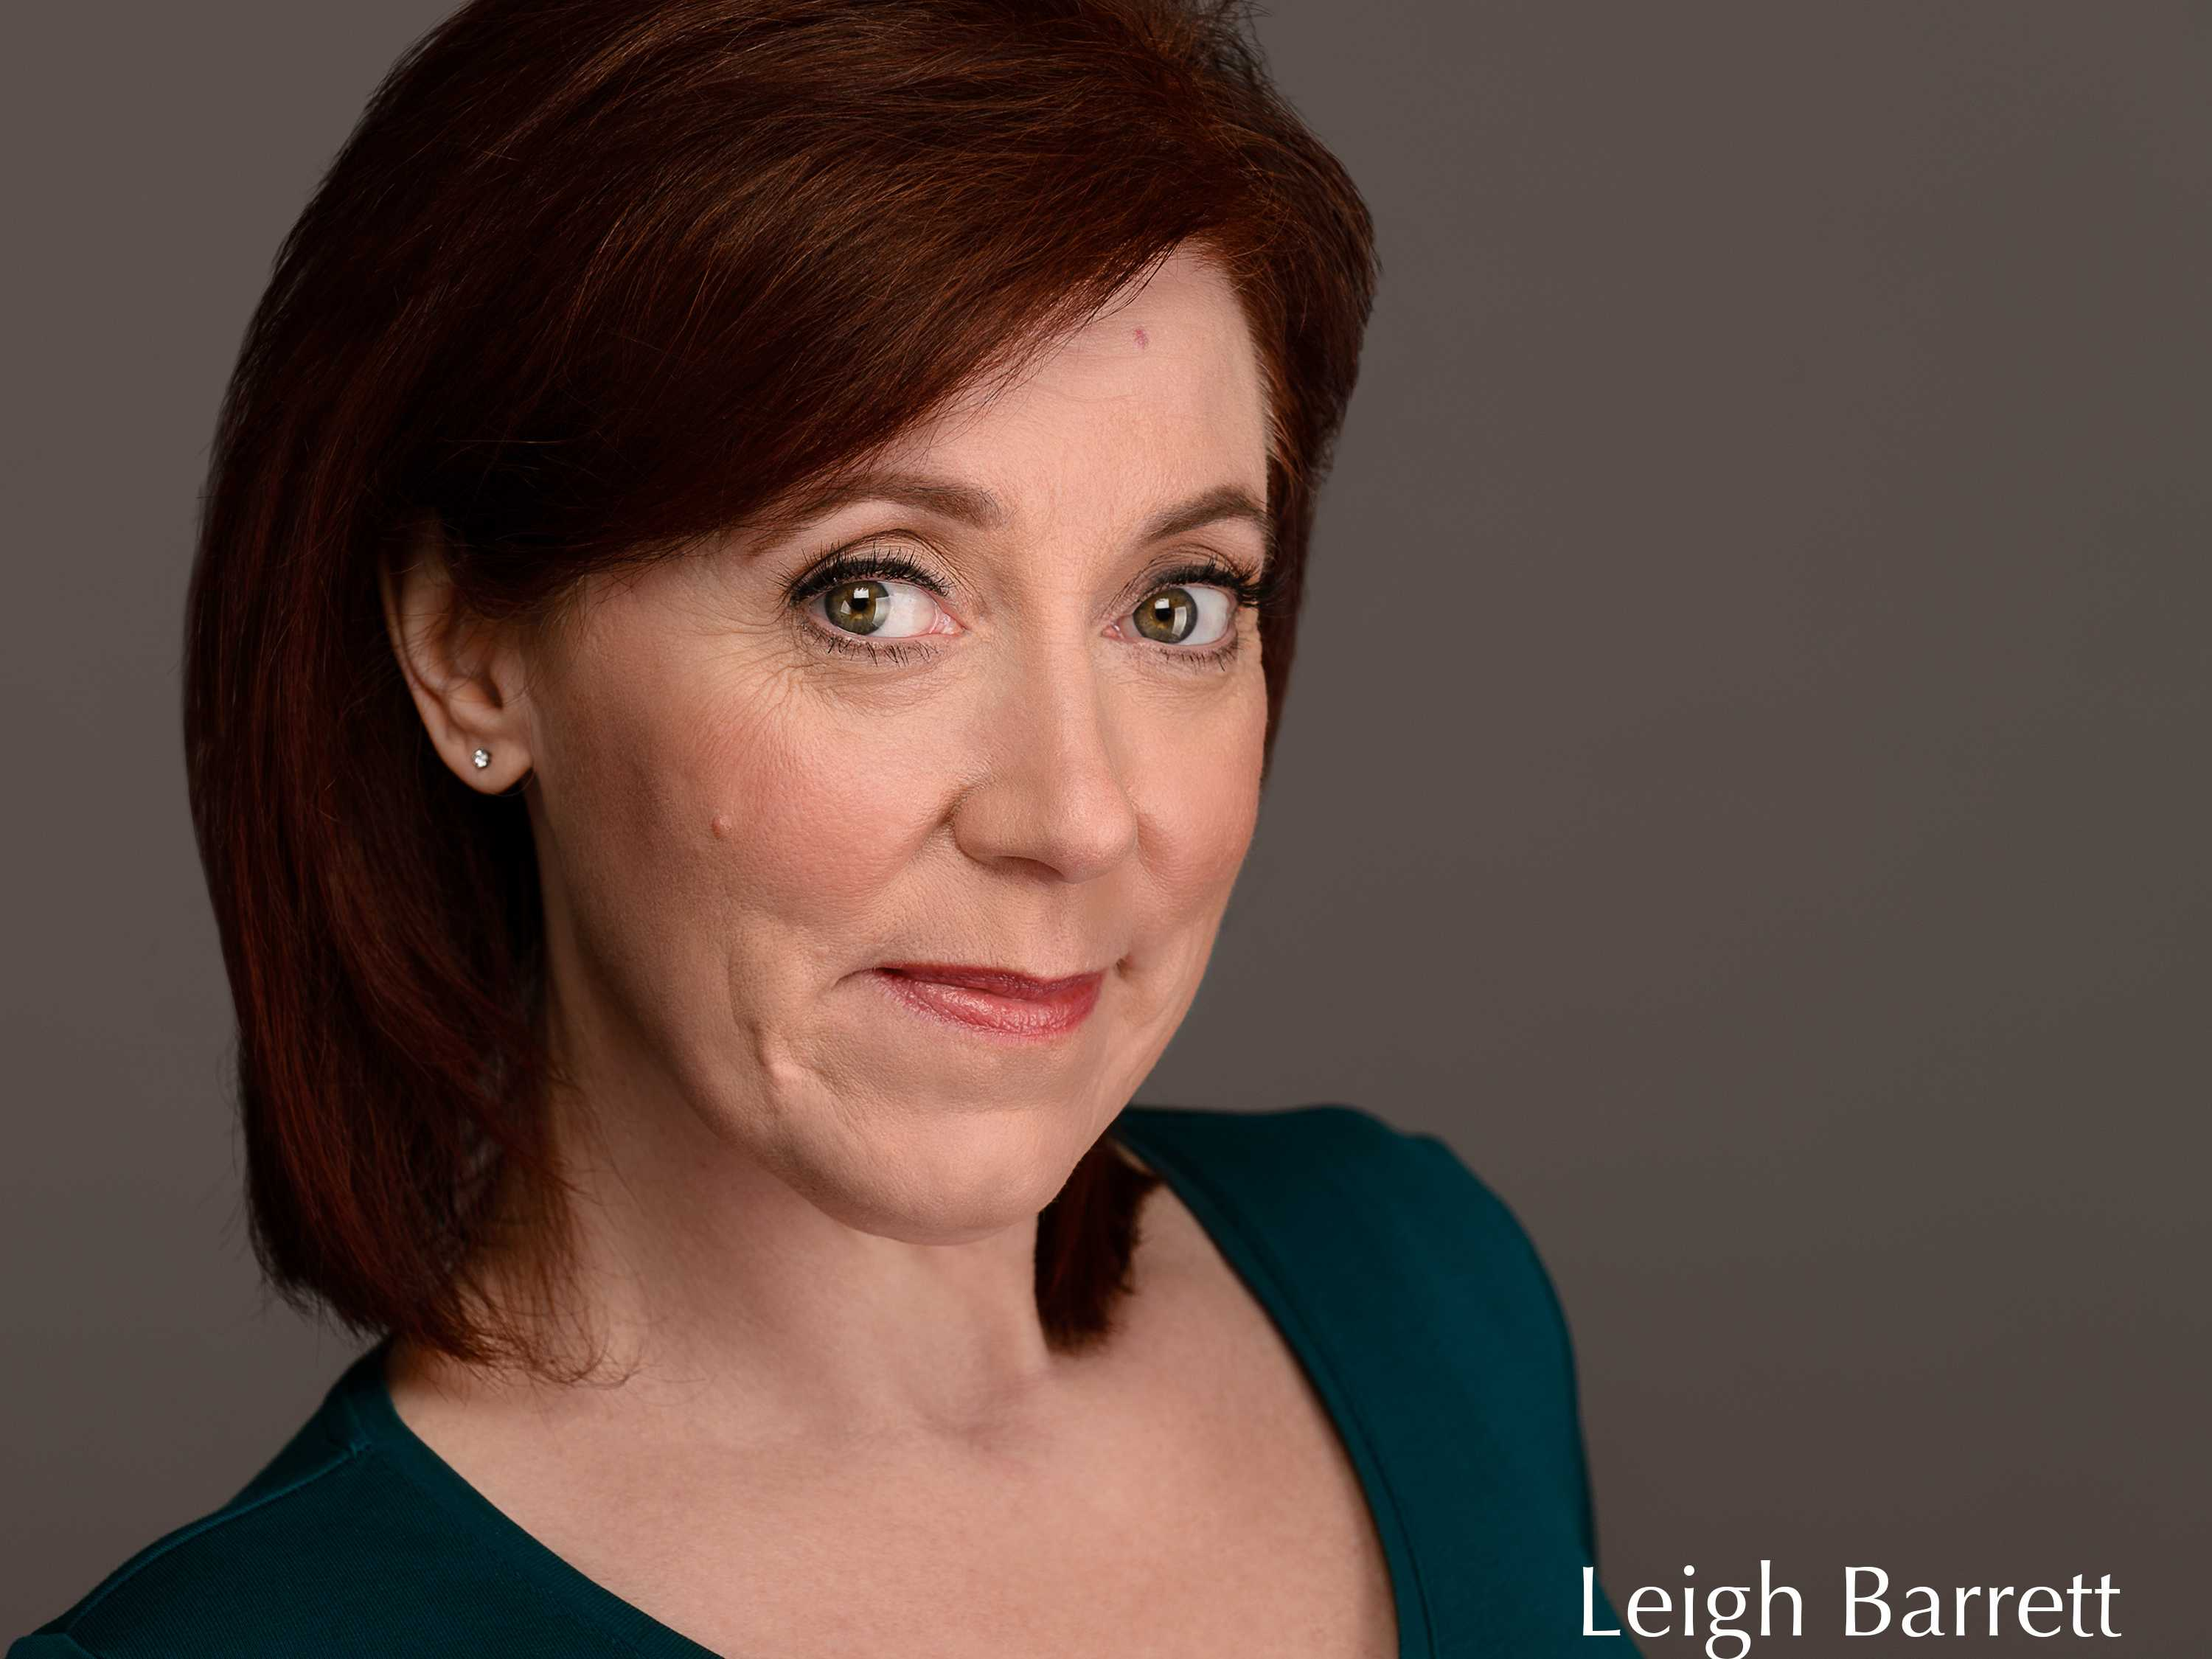 Elliot Norton Awards Nominations Announced, Leigh Barrett to Receive 'Sustained Excellence' Prize